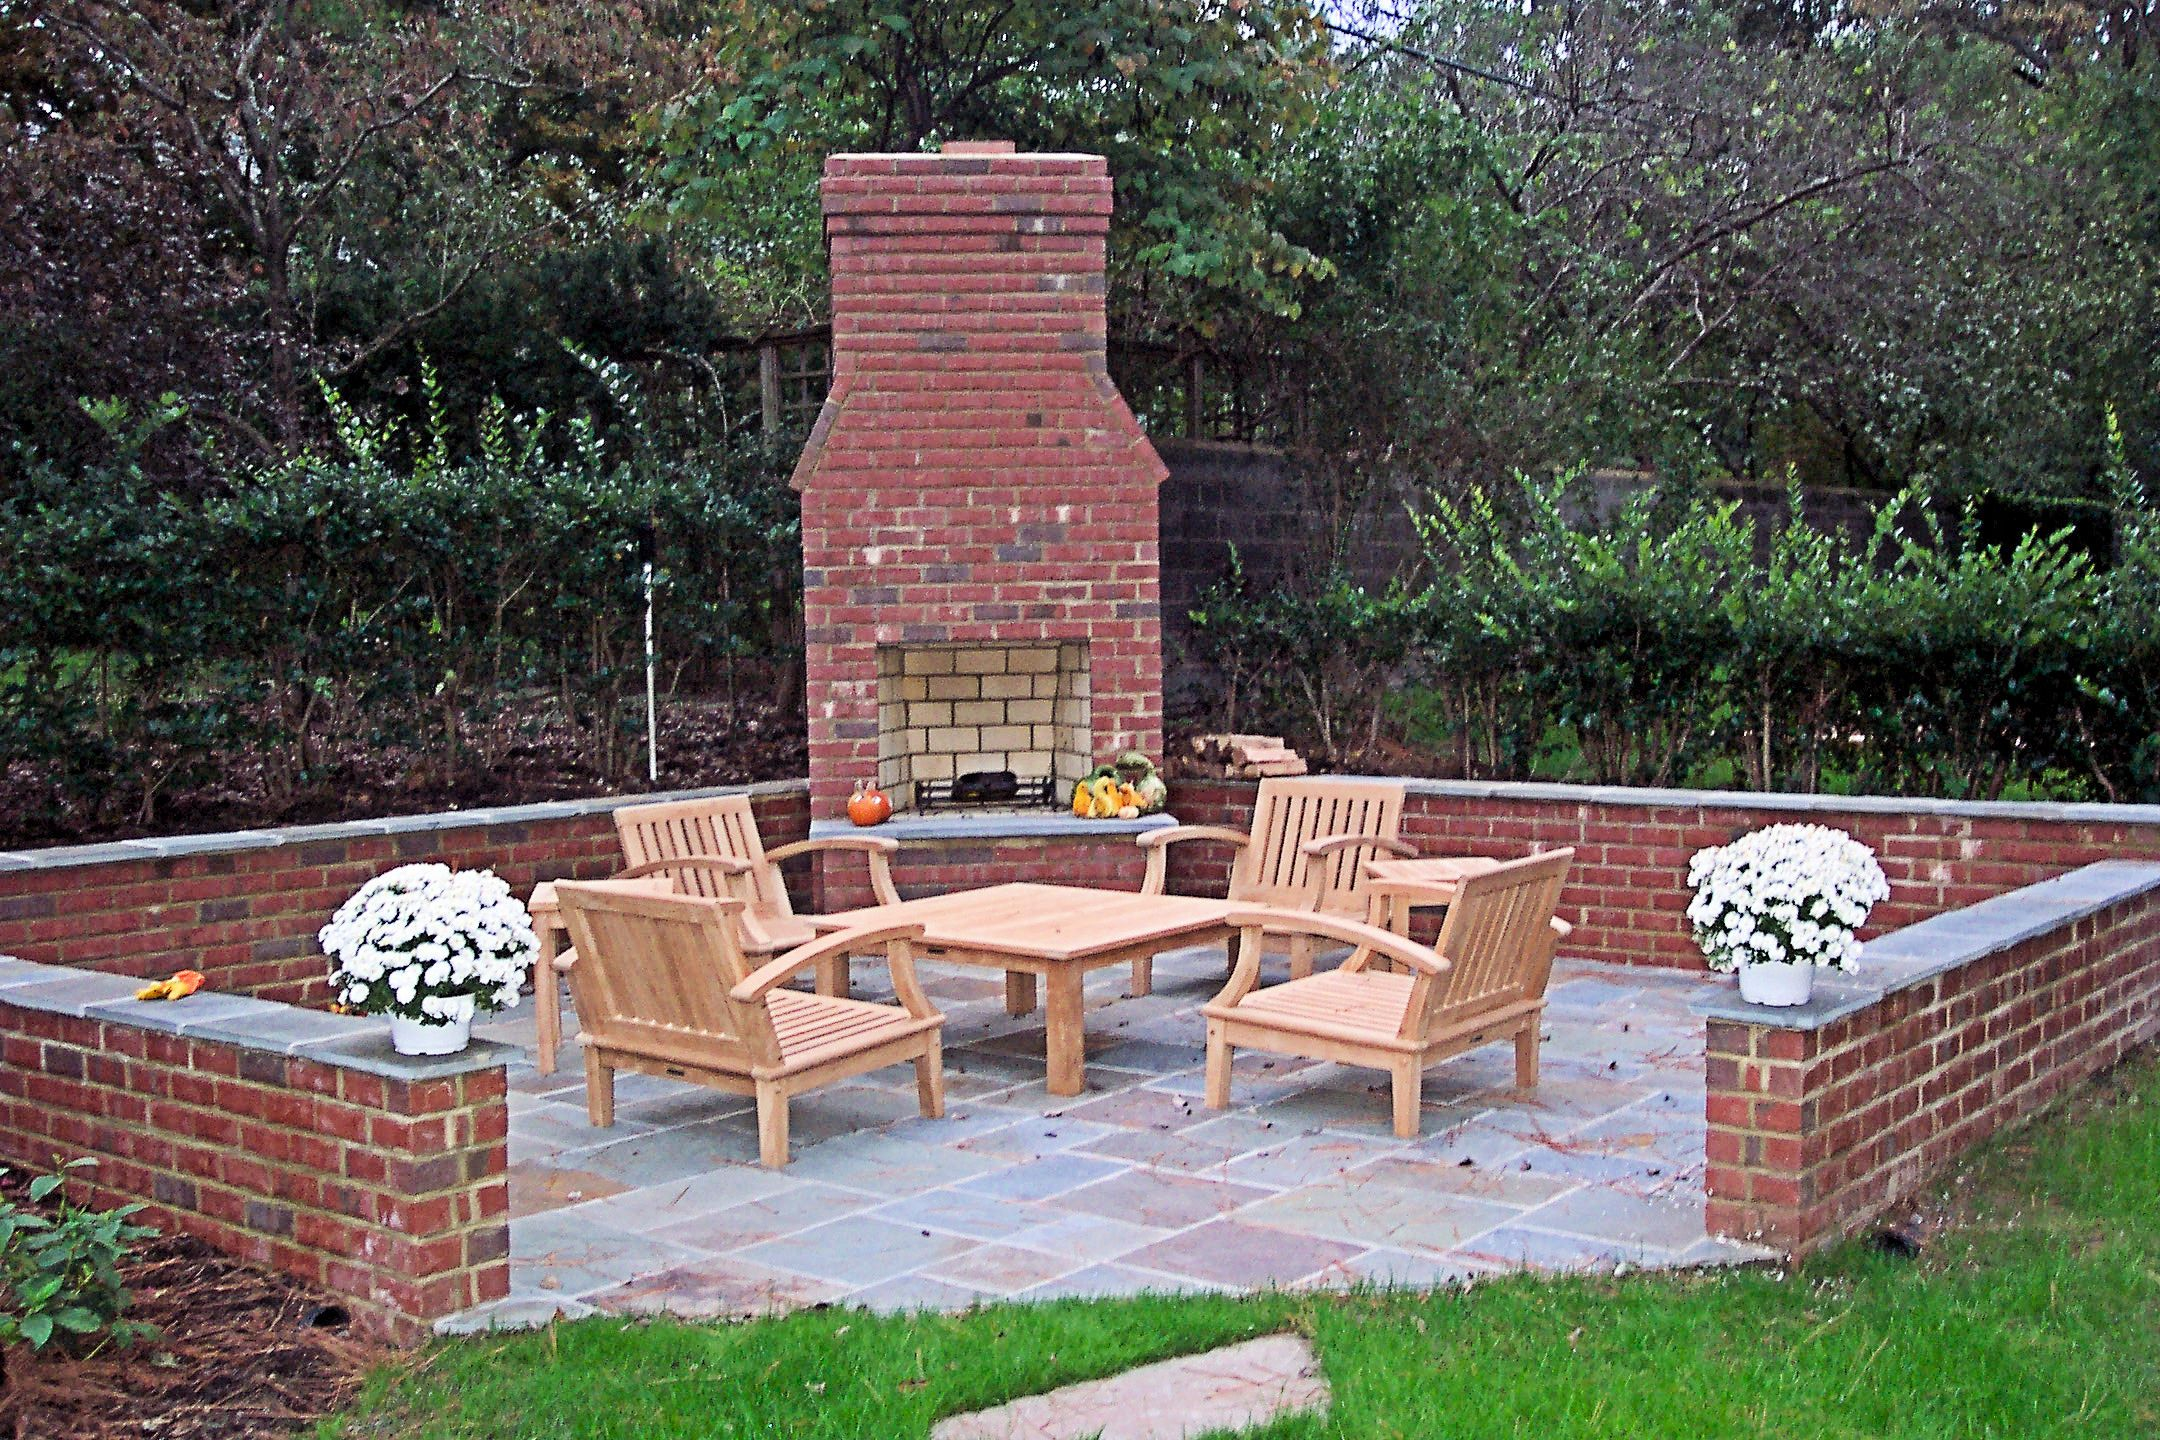 The Brick Around The Outside: Like The Brick Wall Around The Patio